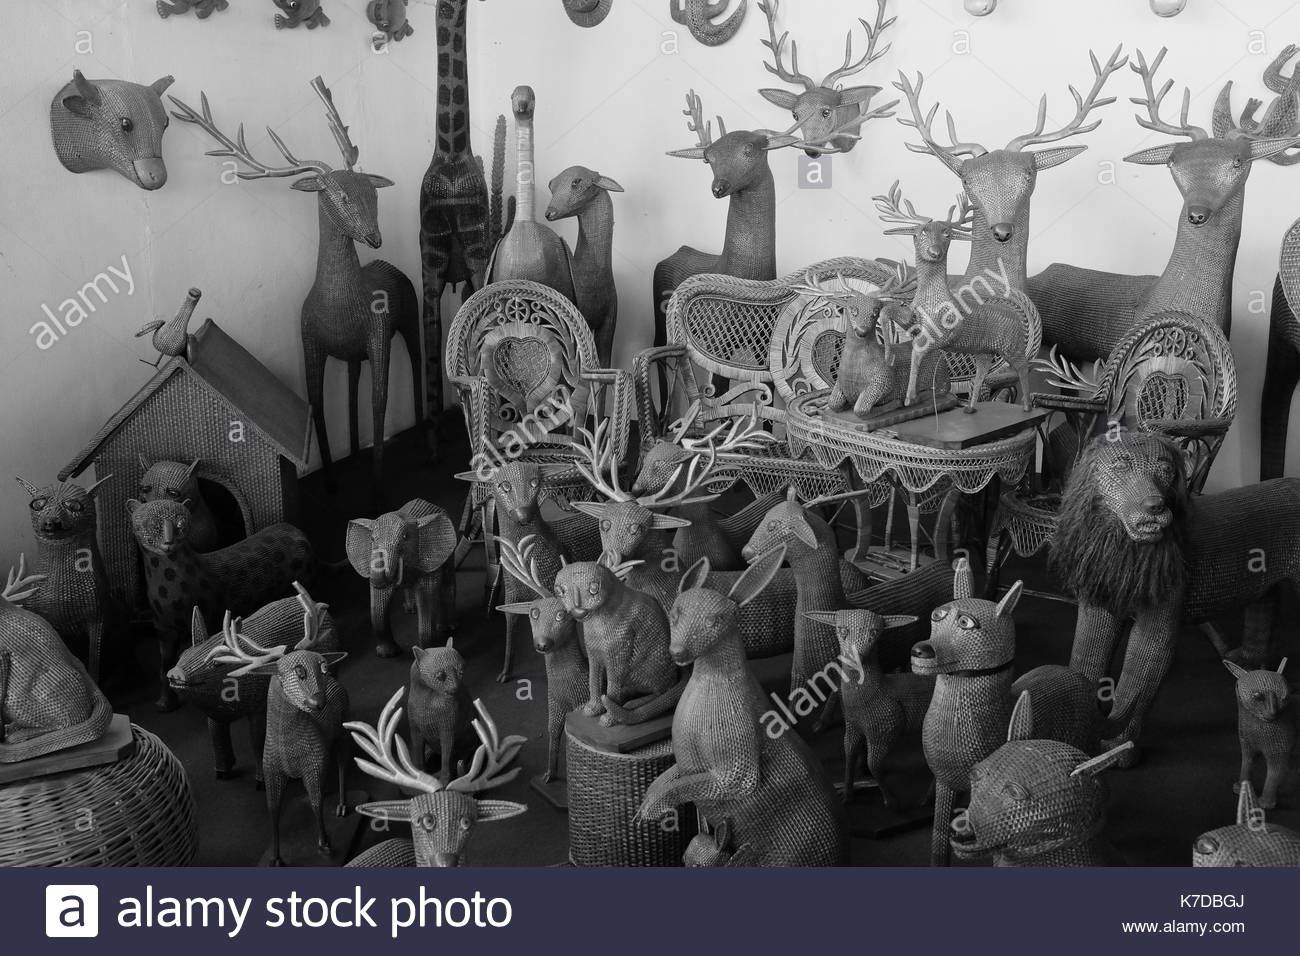 Collection of wicker animals in Camacha, Madeira - Stock Image